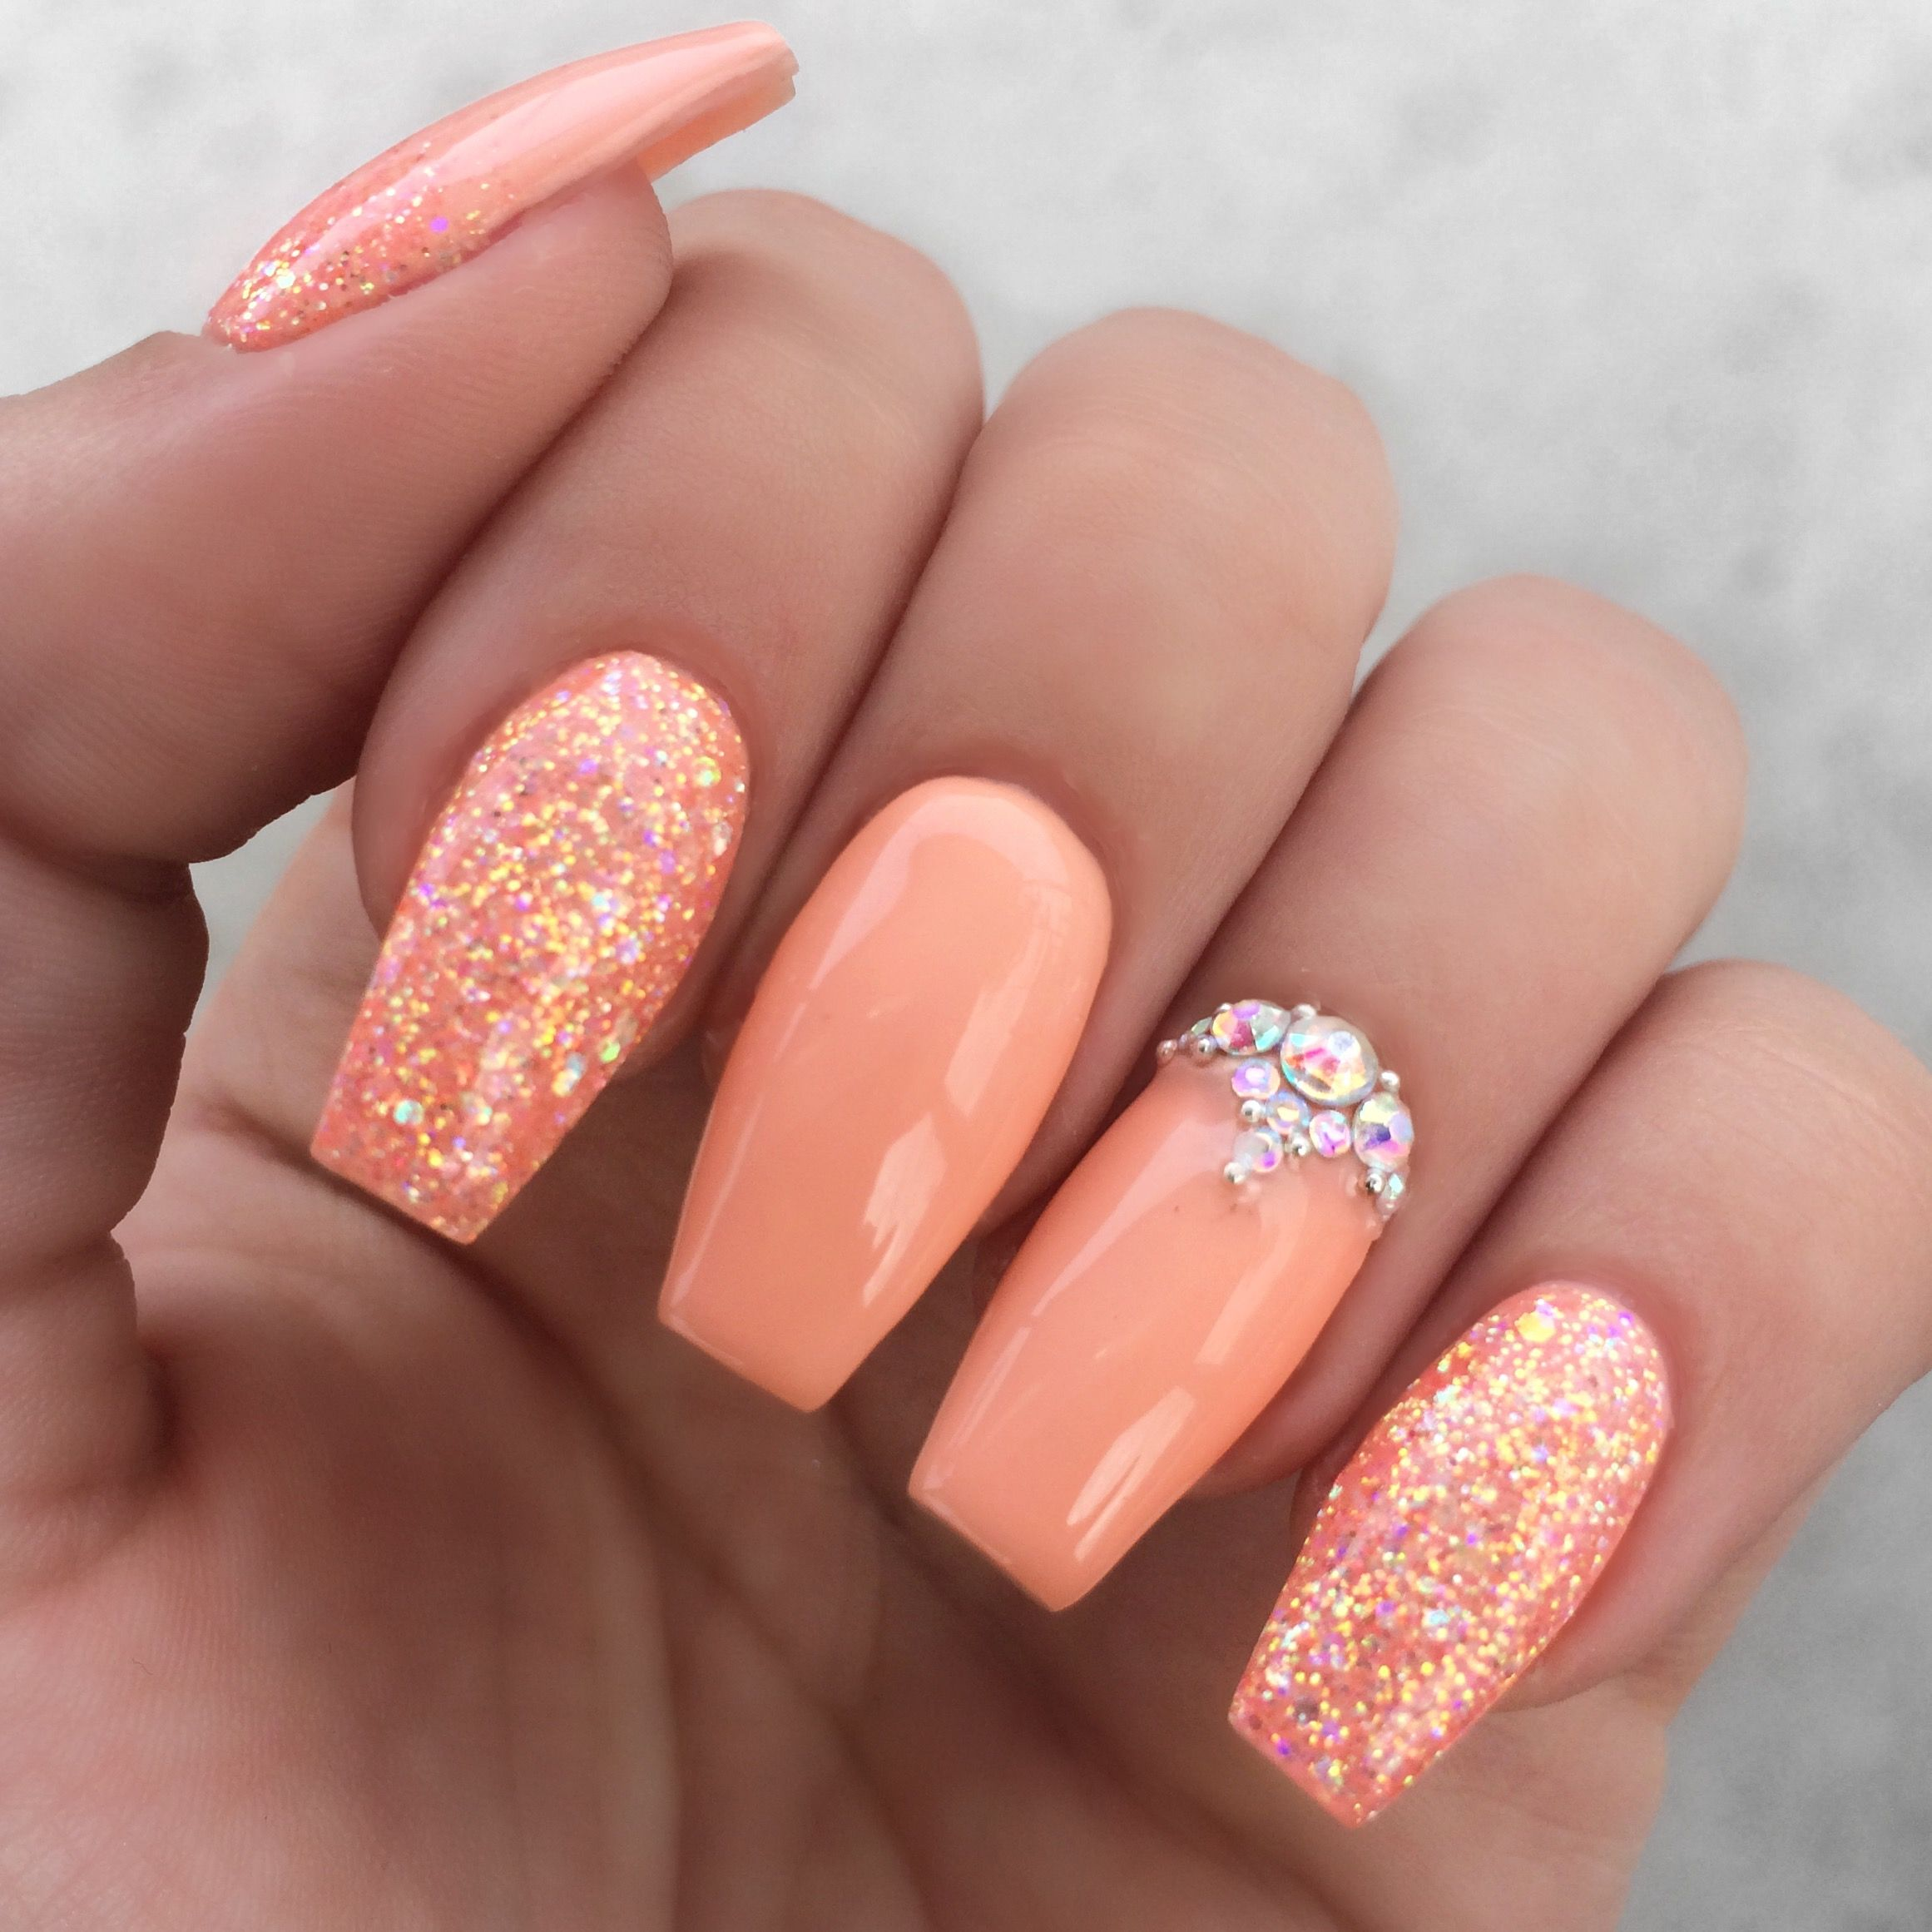 Girly peach glitter rhinestone nails | shine bright | Pinterest ...